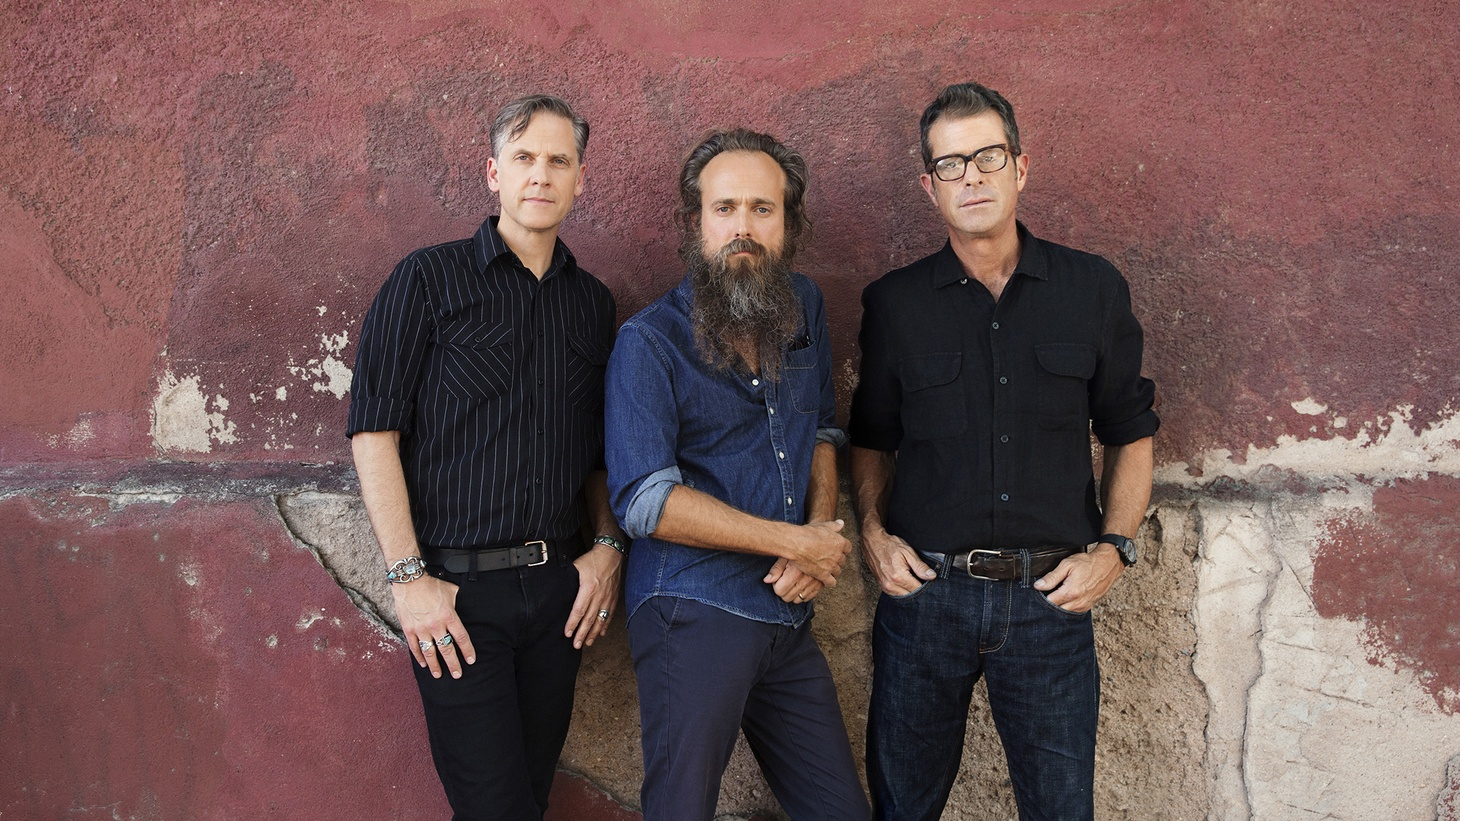 """A beautiful magic happens when like-hearted artists converge; just like in this case with Calexico and Iron & Wine. Their simpatico spirits ascend in gorgeous melody, as their bona fide talent shines through on """"Father Mountain."""""""